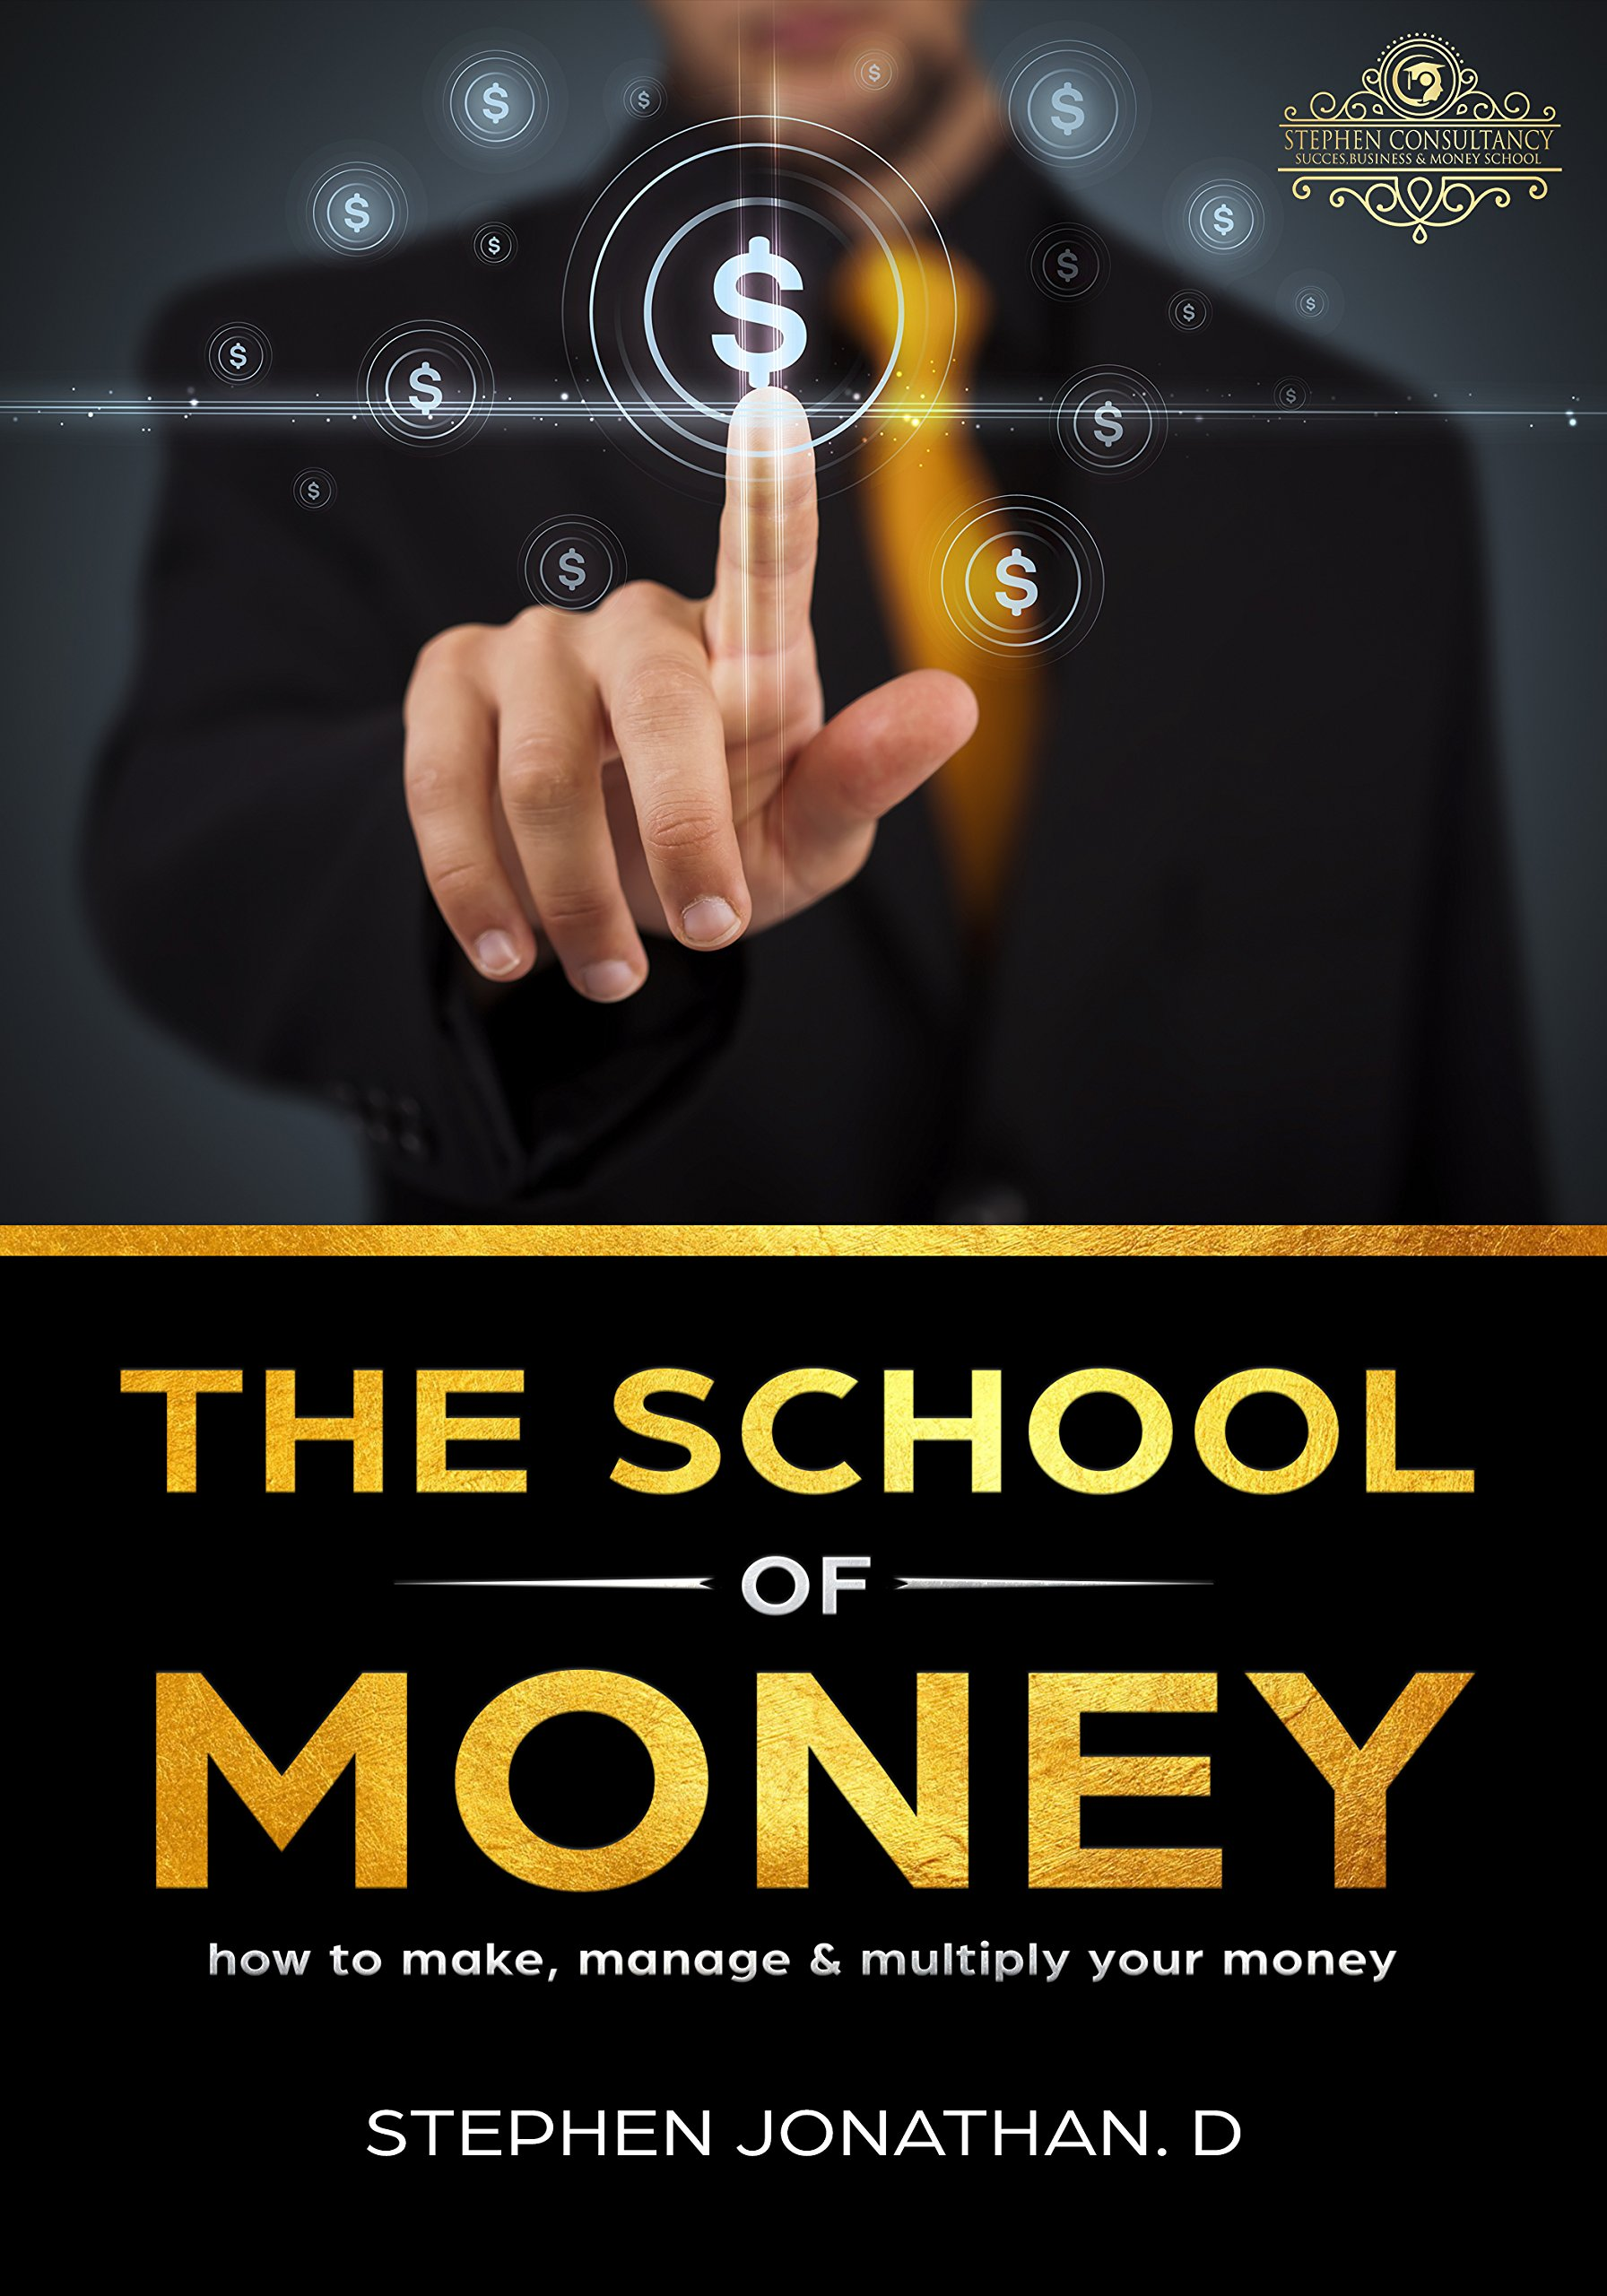 THE SCHOOL OF MONEY: HOW TO MAKE, MANAGE AND MULTIPLY YOUR MONEY (HOW TO MAKE EXTRA MONEY, LOVE IS NOT ENOUGH , PASSIVE INCOME, HOW TO BECOME A MILLIONAIRE, HOW TO MAKE $ 100 000, WORK FROM HOME)